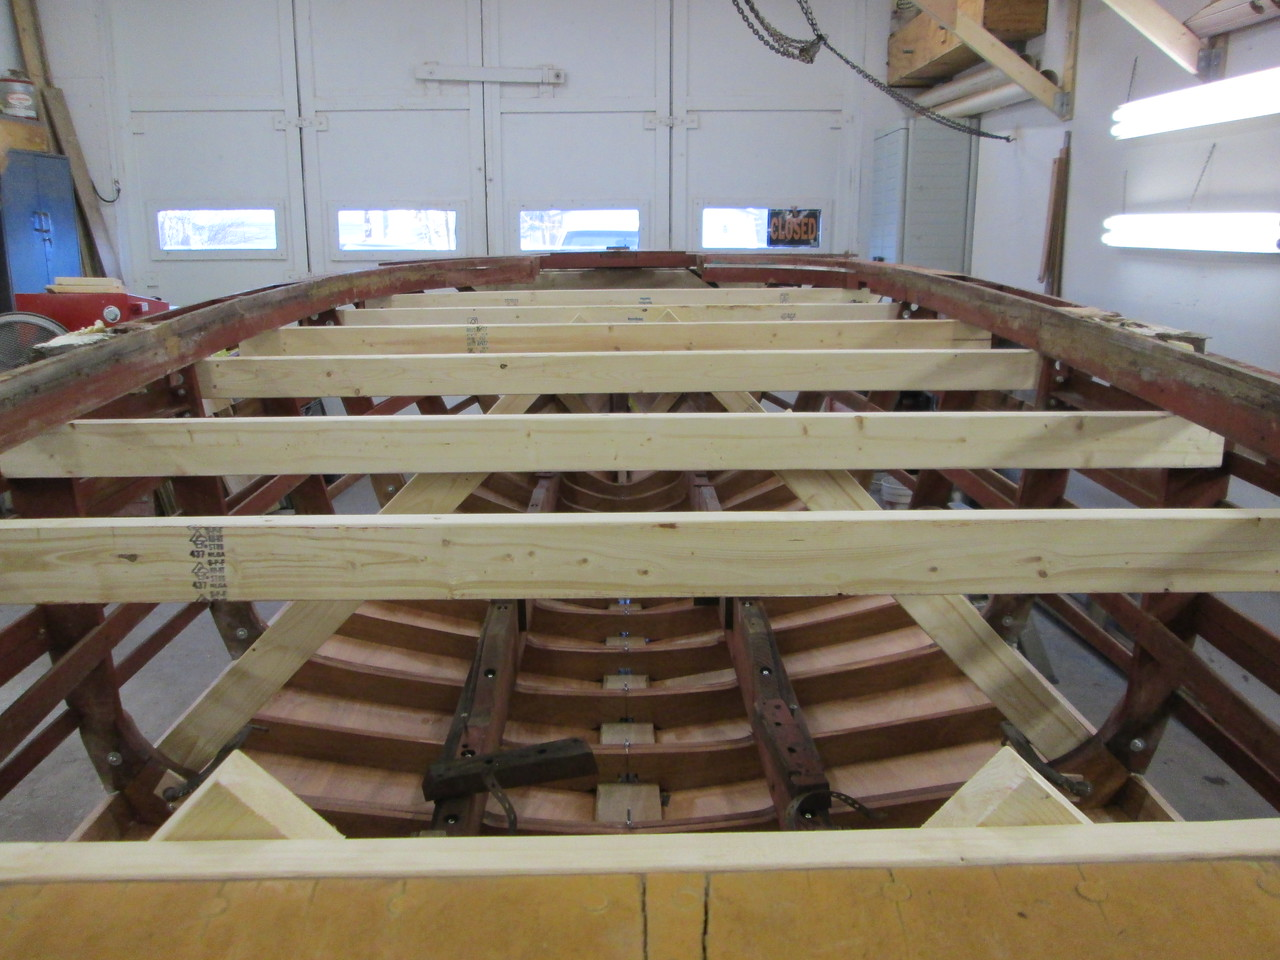 Temporary framing to hold the hull in shape while the sides and deck are removed.